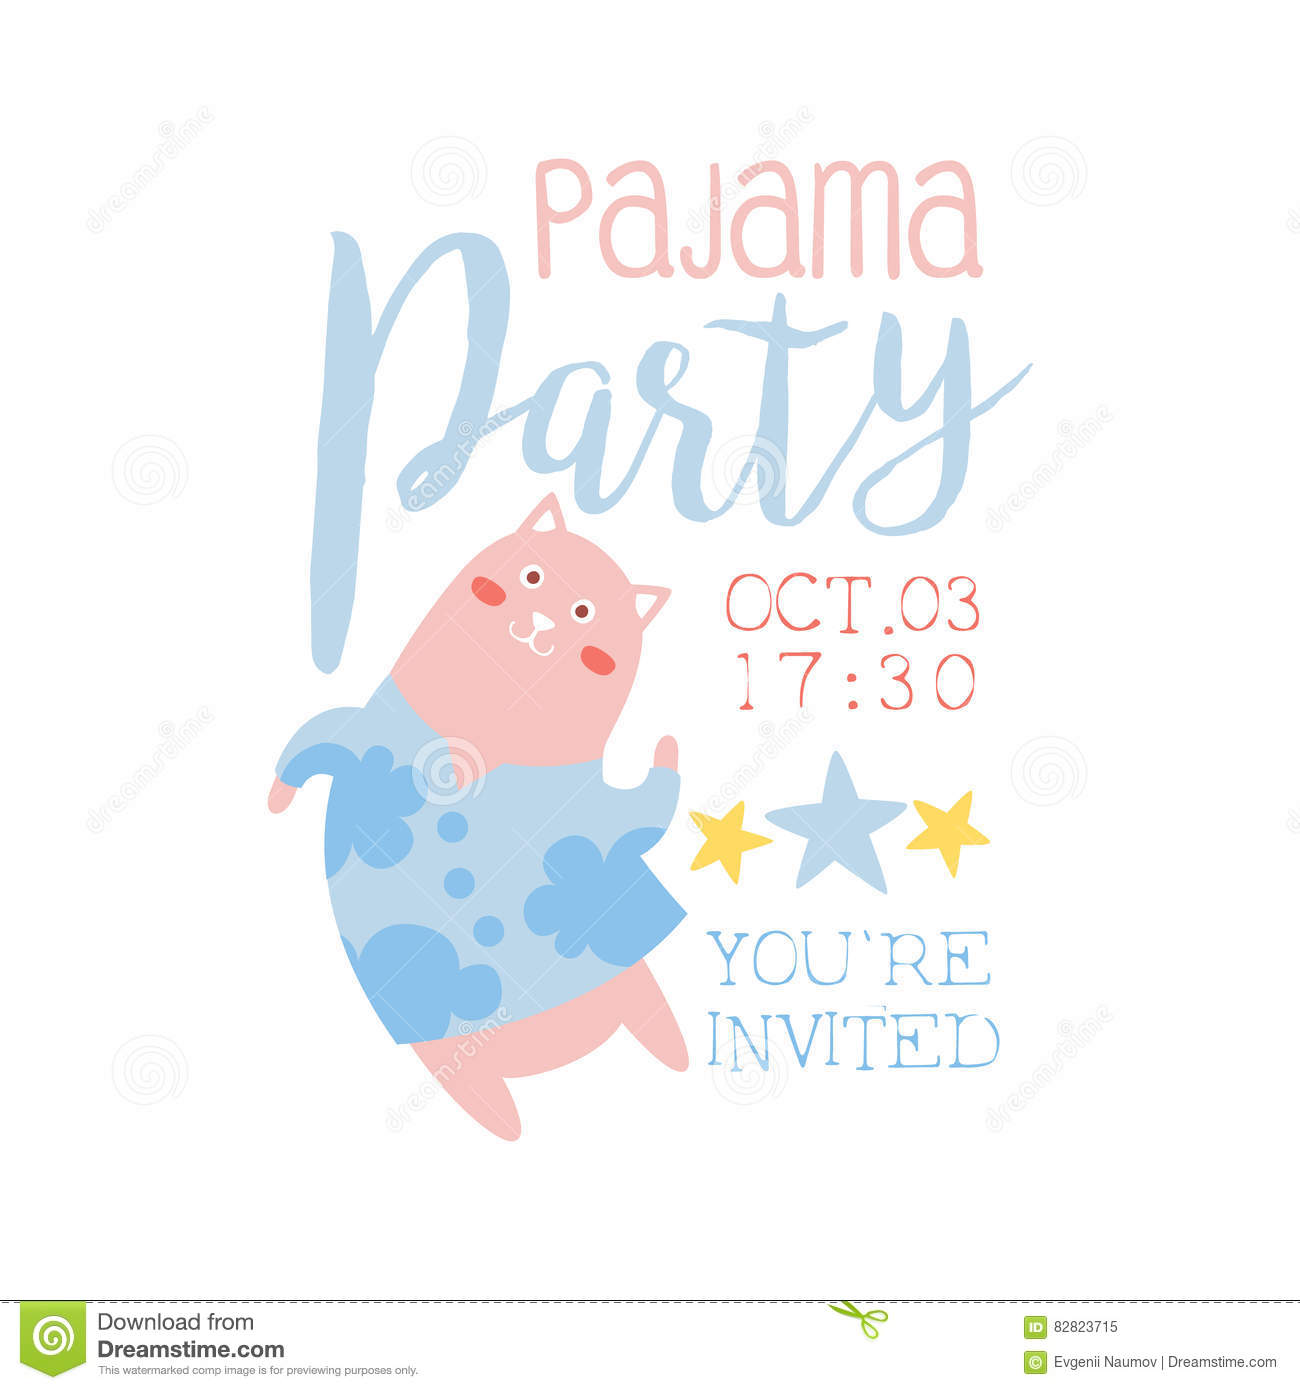 Girly Pajama Party Invitation Card Template With Cat Inviting Kids ...